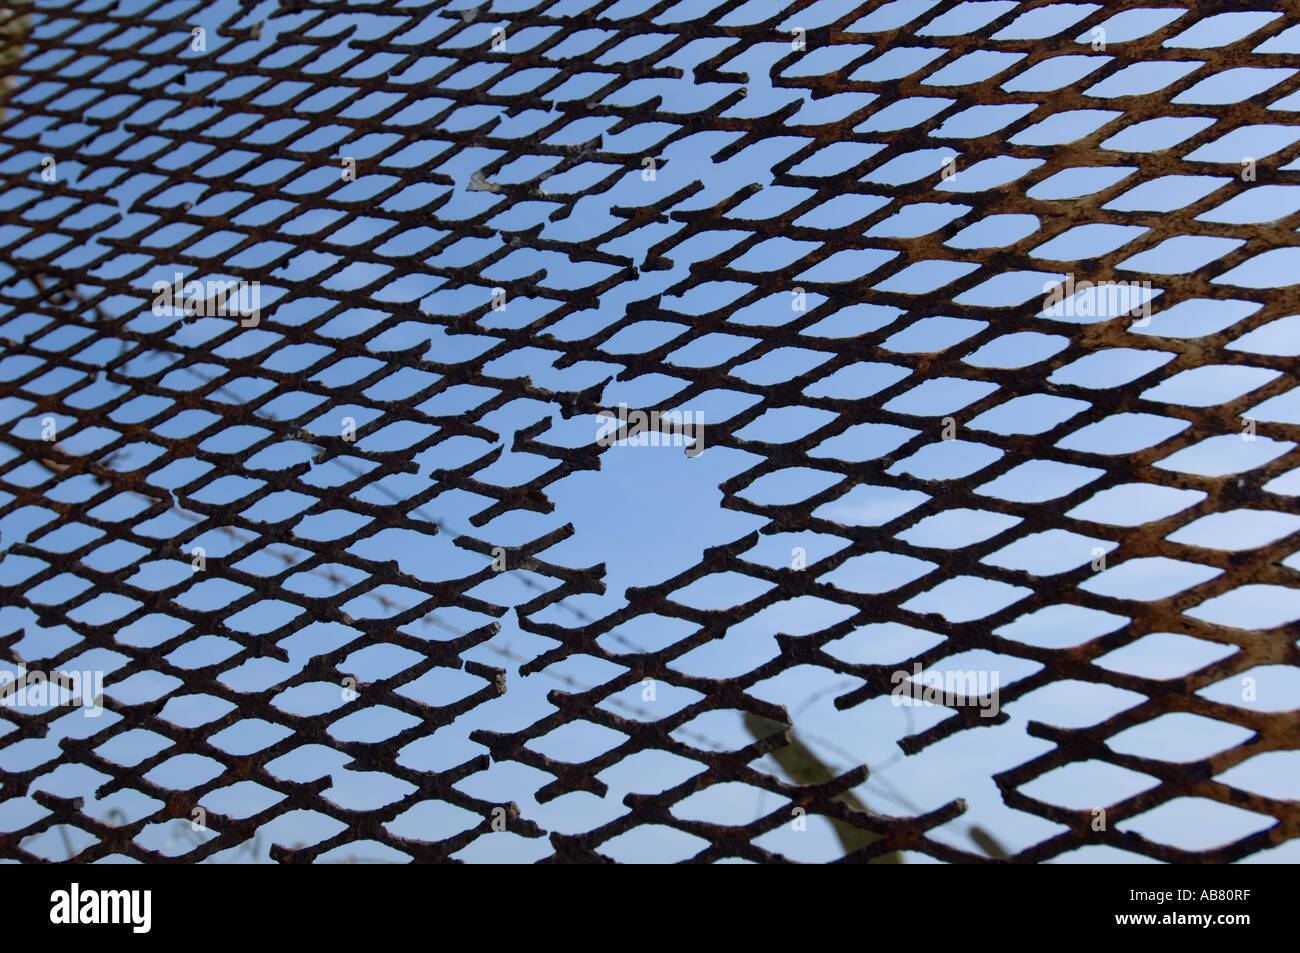 rusty wire fence Dungeness Kent Stock Photo: 7318654 - Alamy